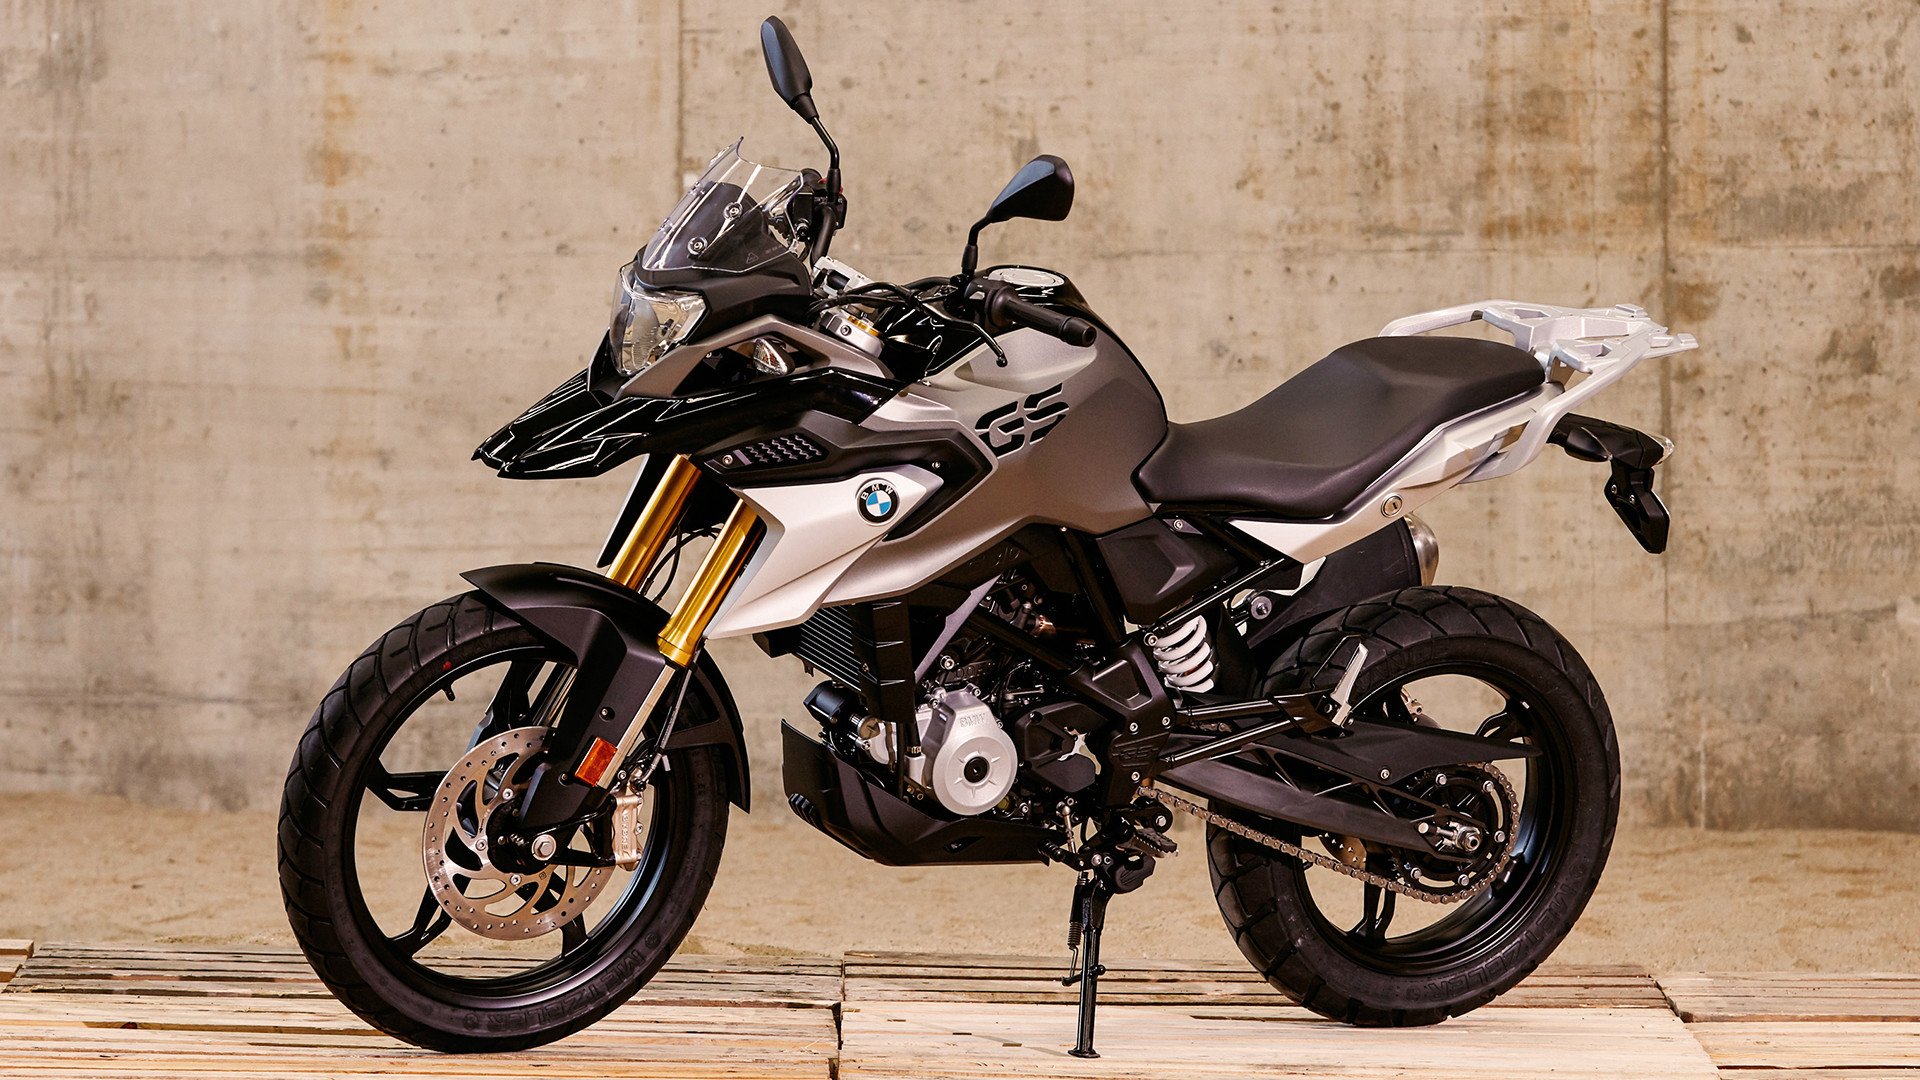 2017 - 2018 BMW G 310 R / G 310 GS Pictures, Photos ...